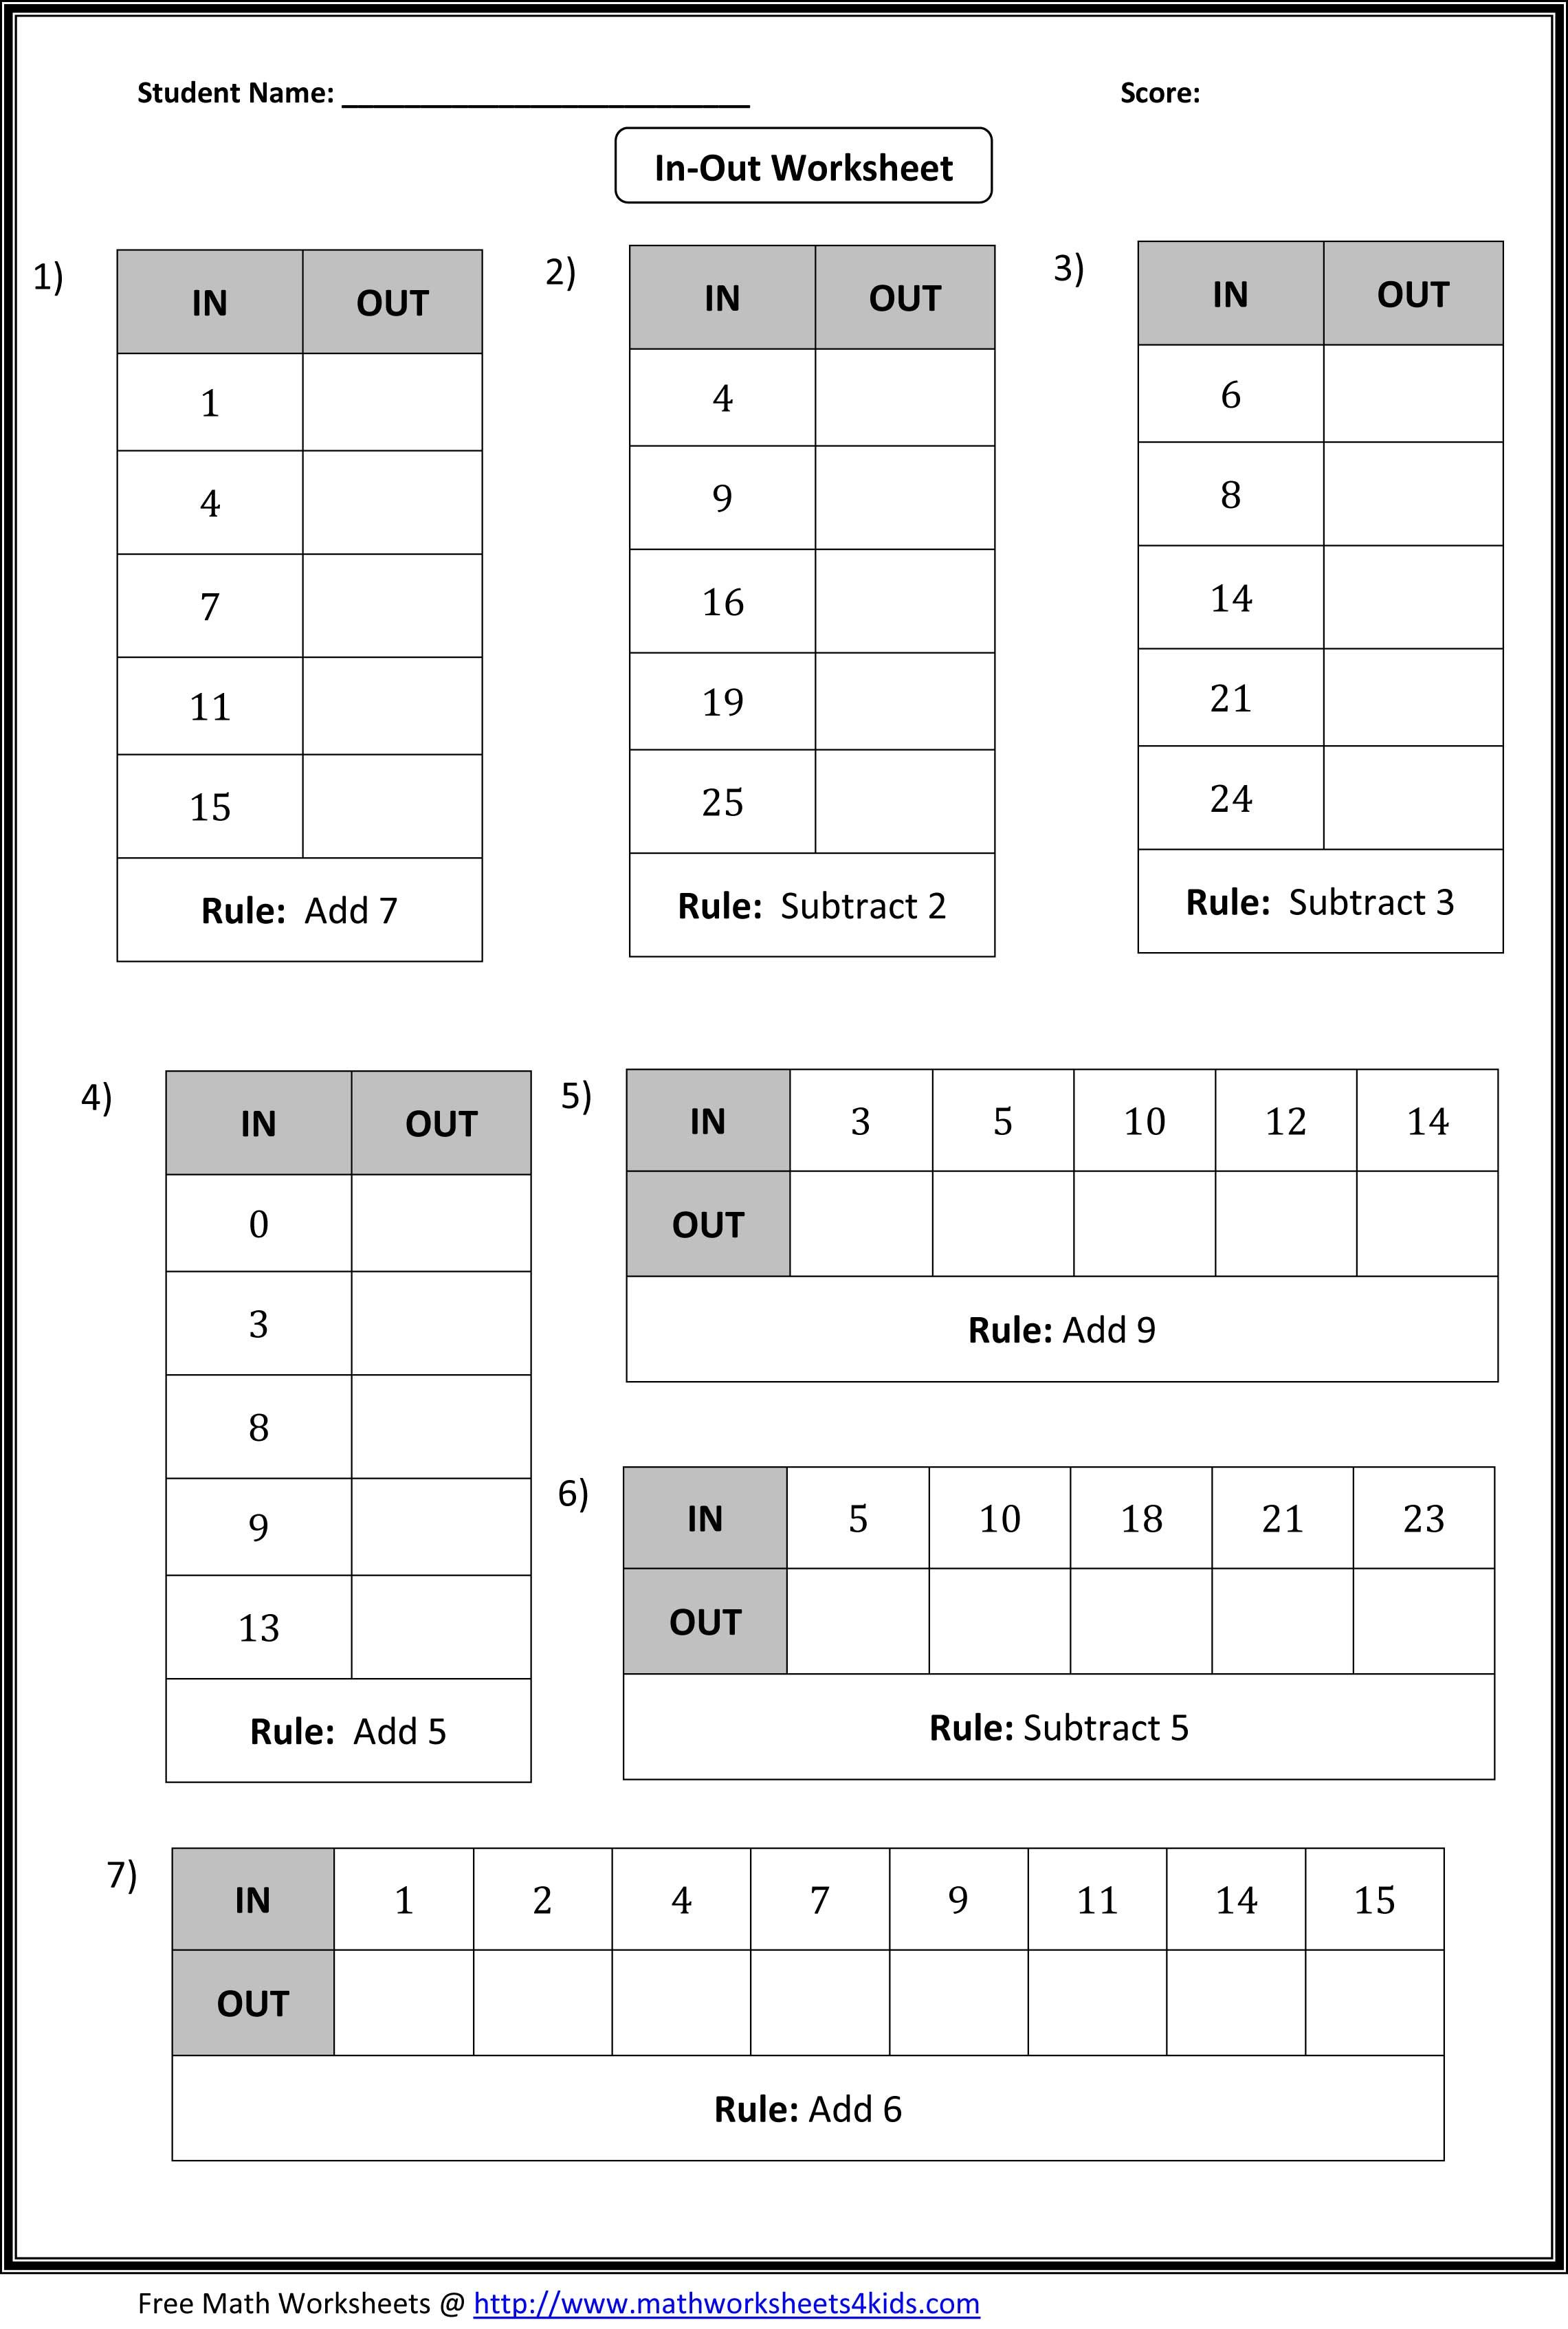 Worksheet Multiplying Decimals Activities in out boxes worksheets include addition subtraction multiplication and division of whole